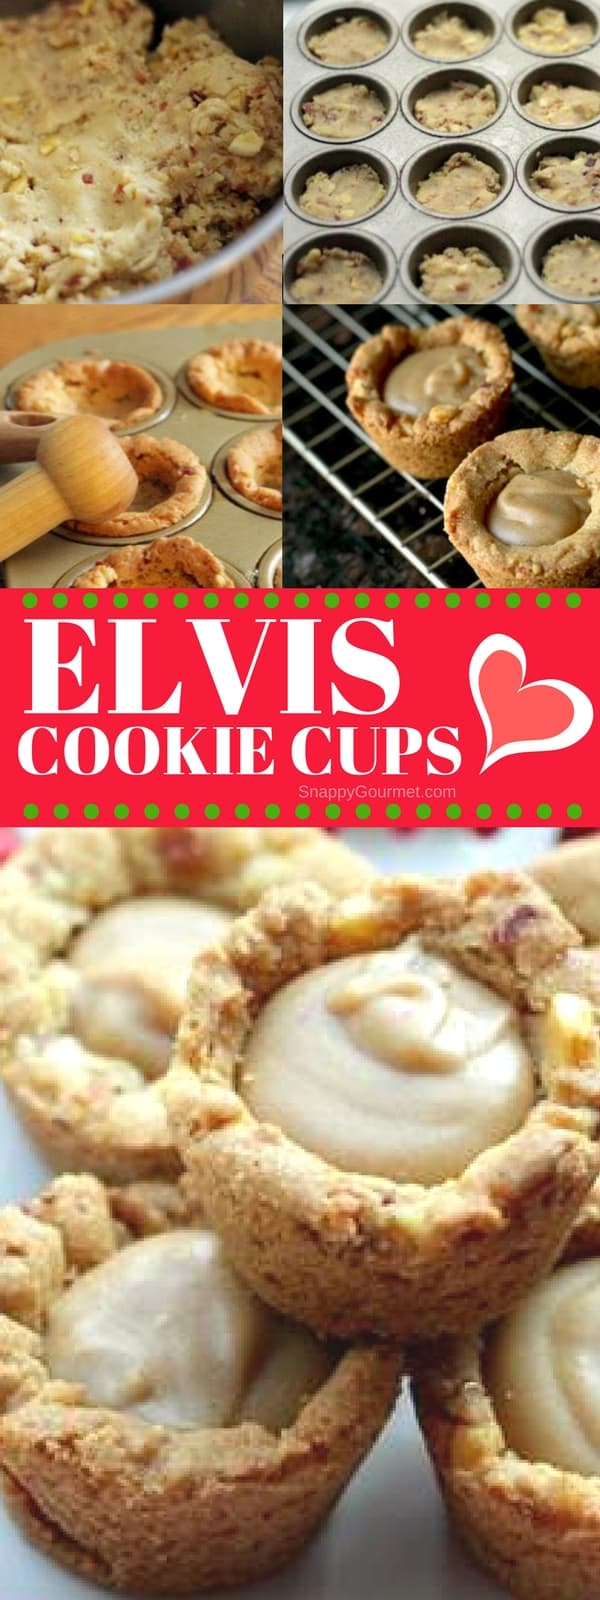 Elvis Cookie Cups Recipe - easy Christmas cookie recipe with peanut butter, bacon, and banana! SnappyGourmet.com